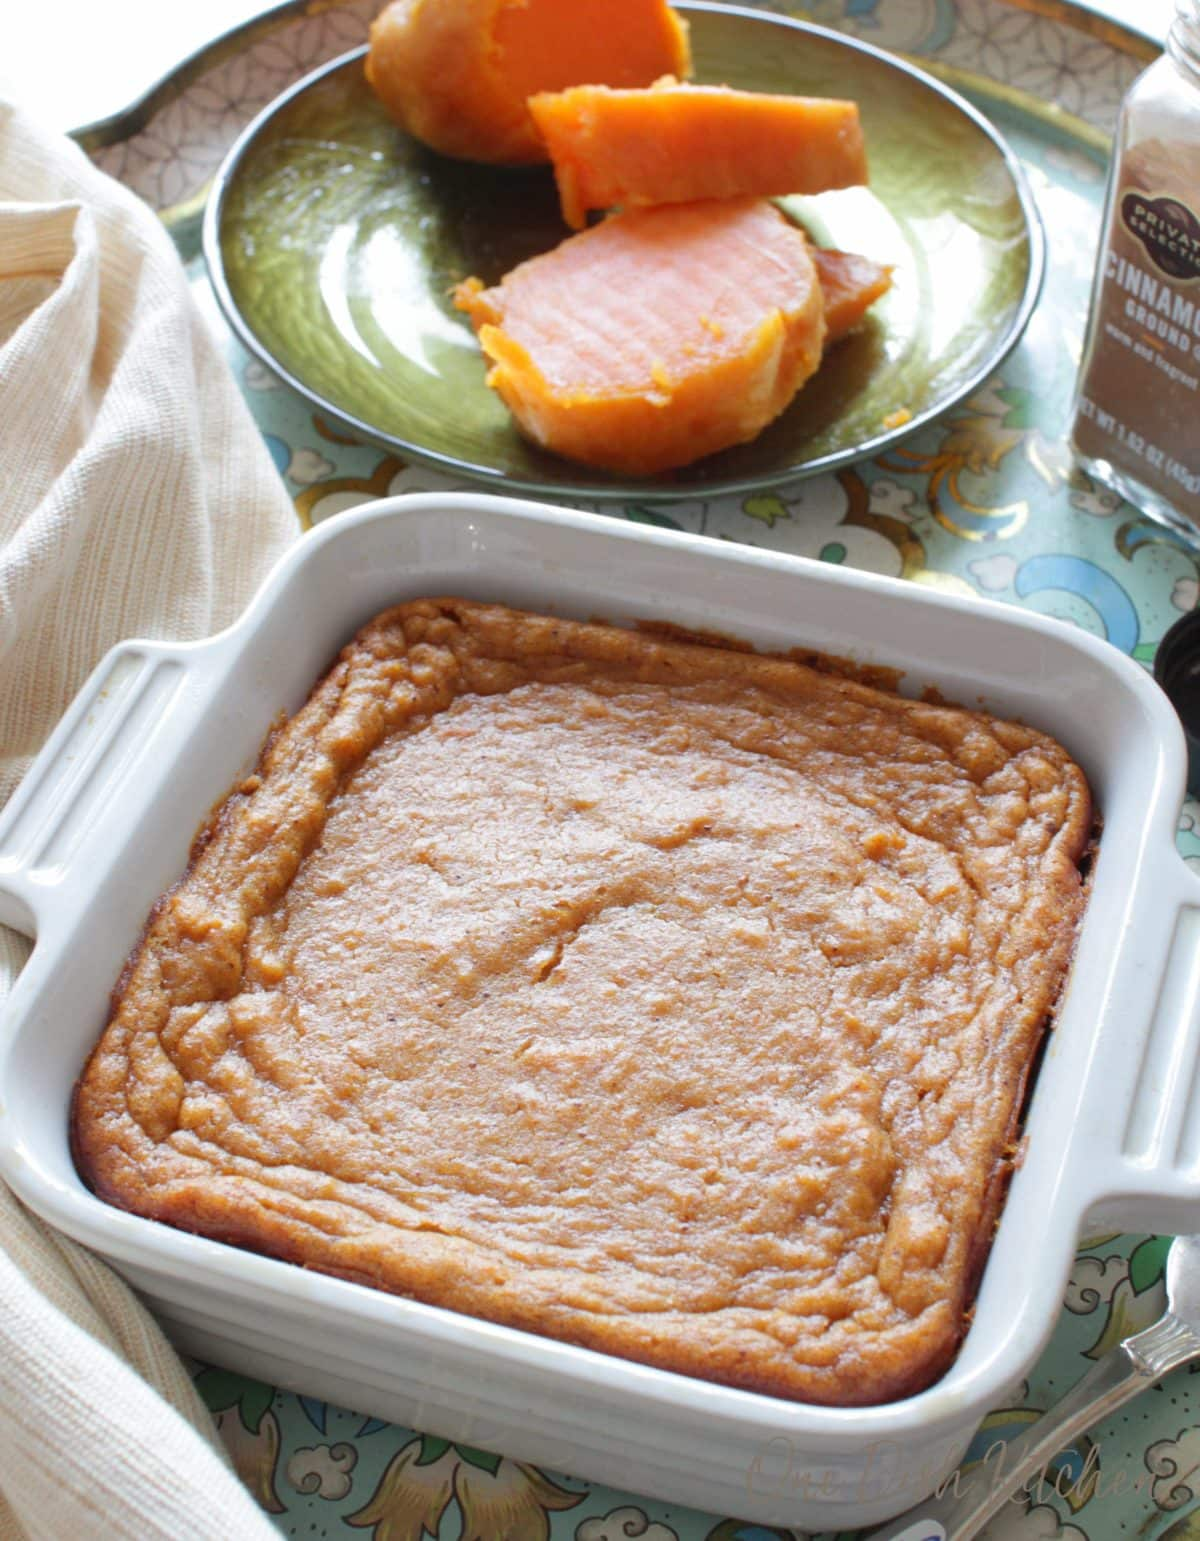 a sweet potato pie made for one person on a tray.